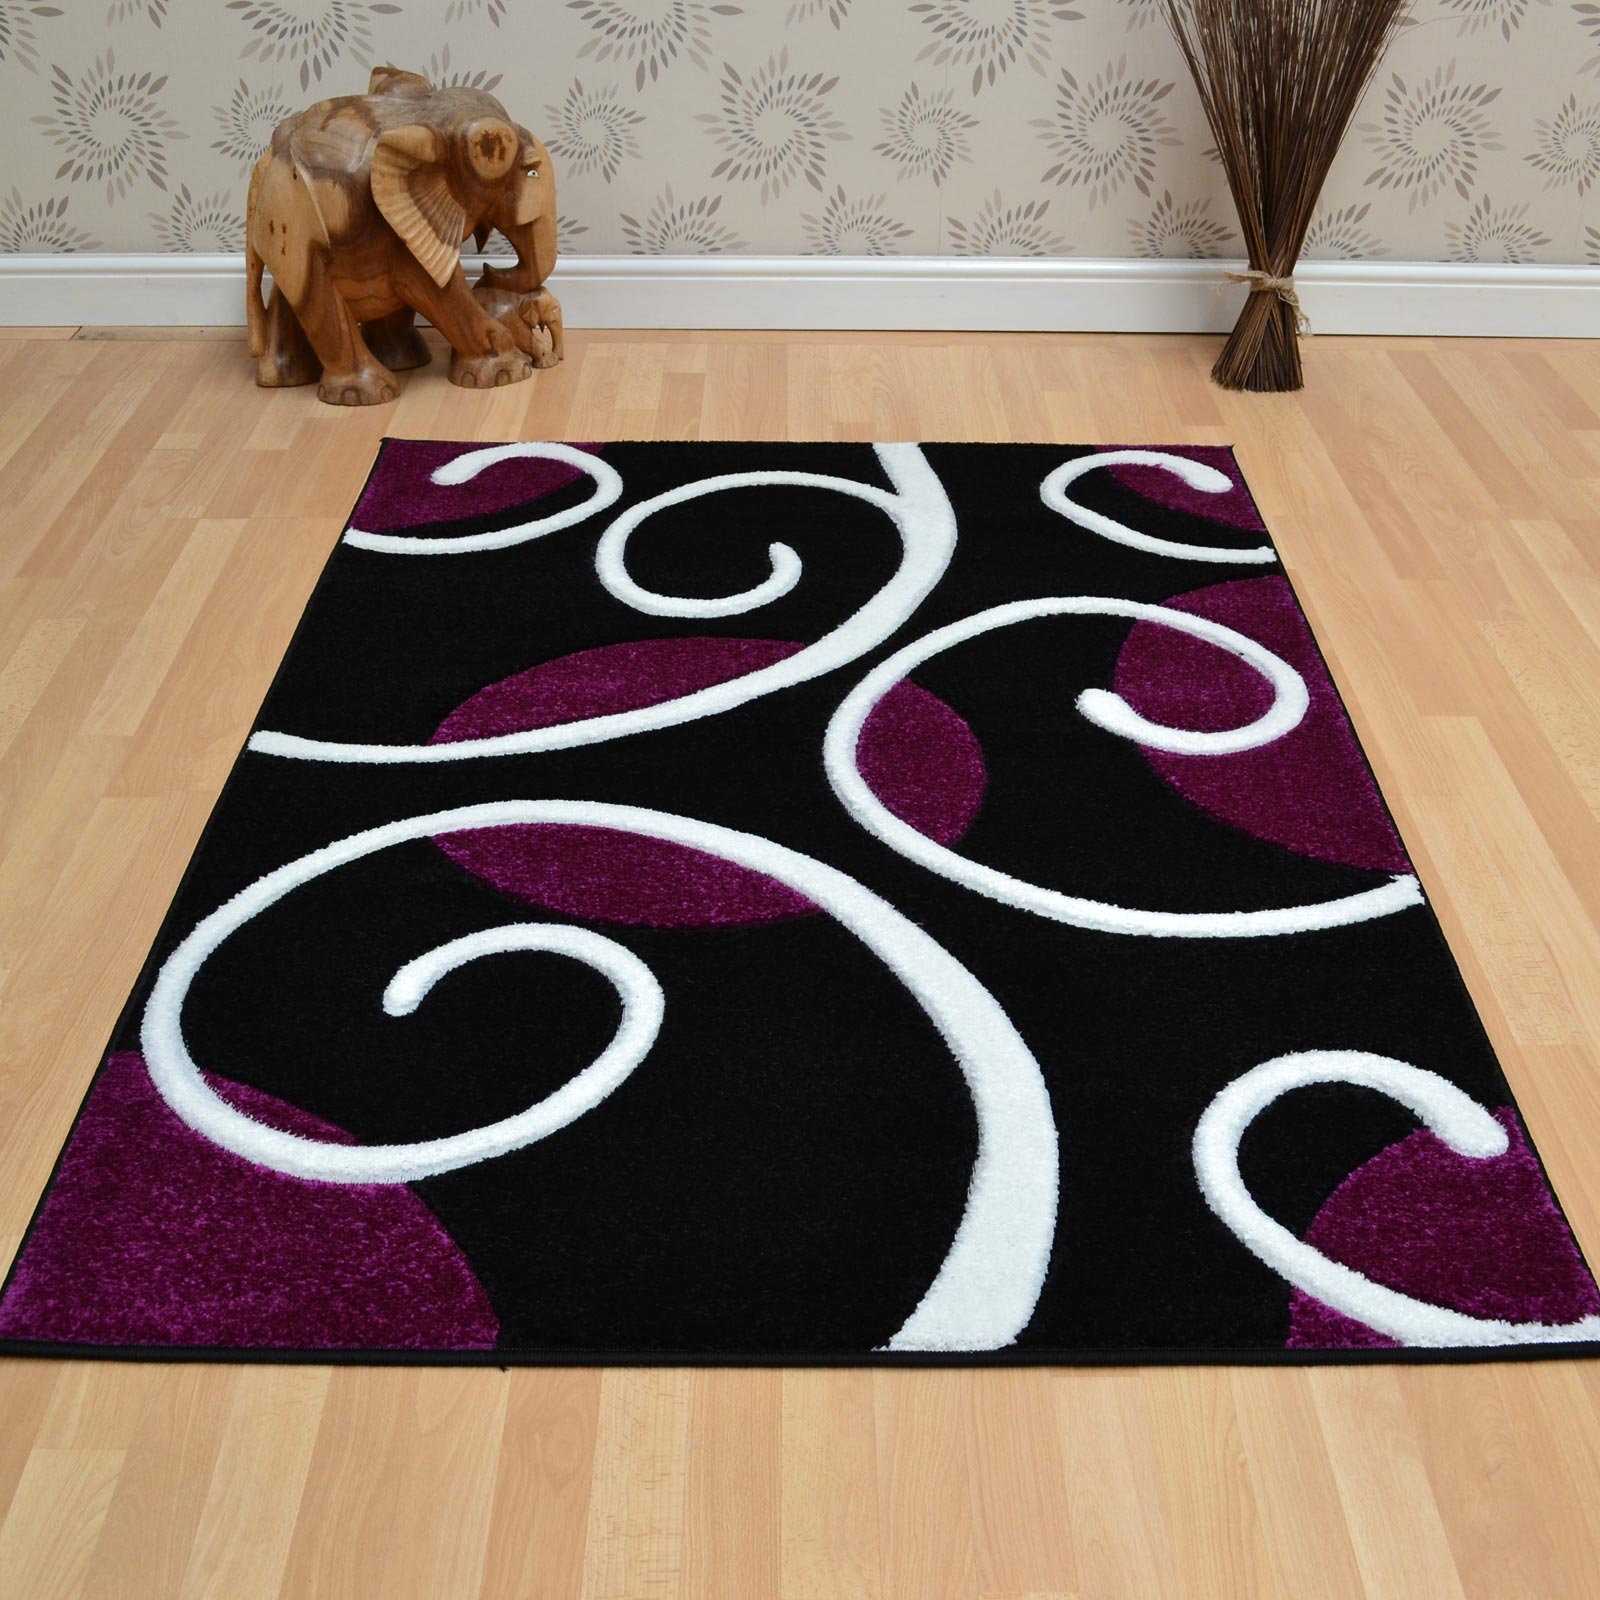 Couture Rugs COU04 Purple Black